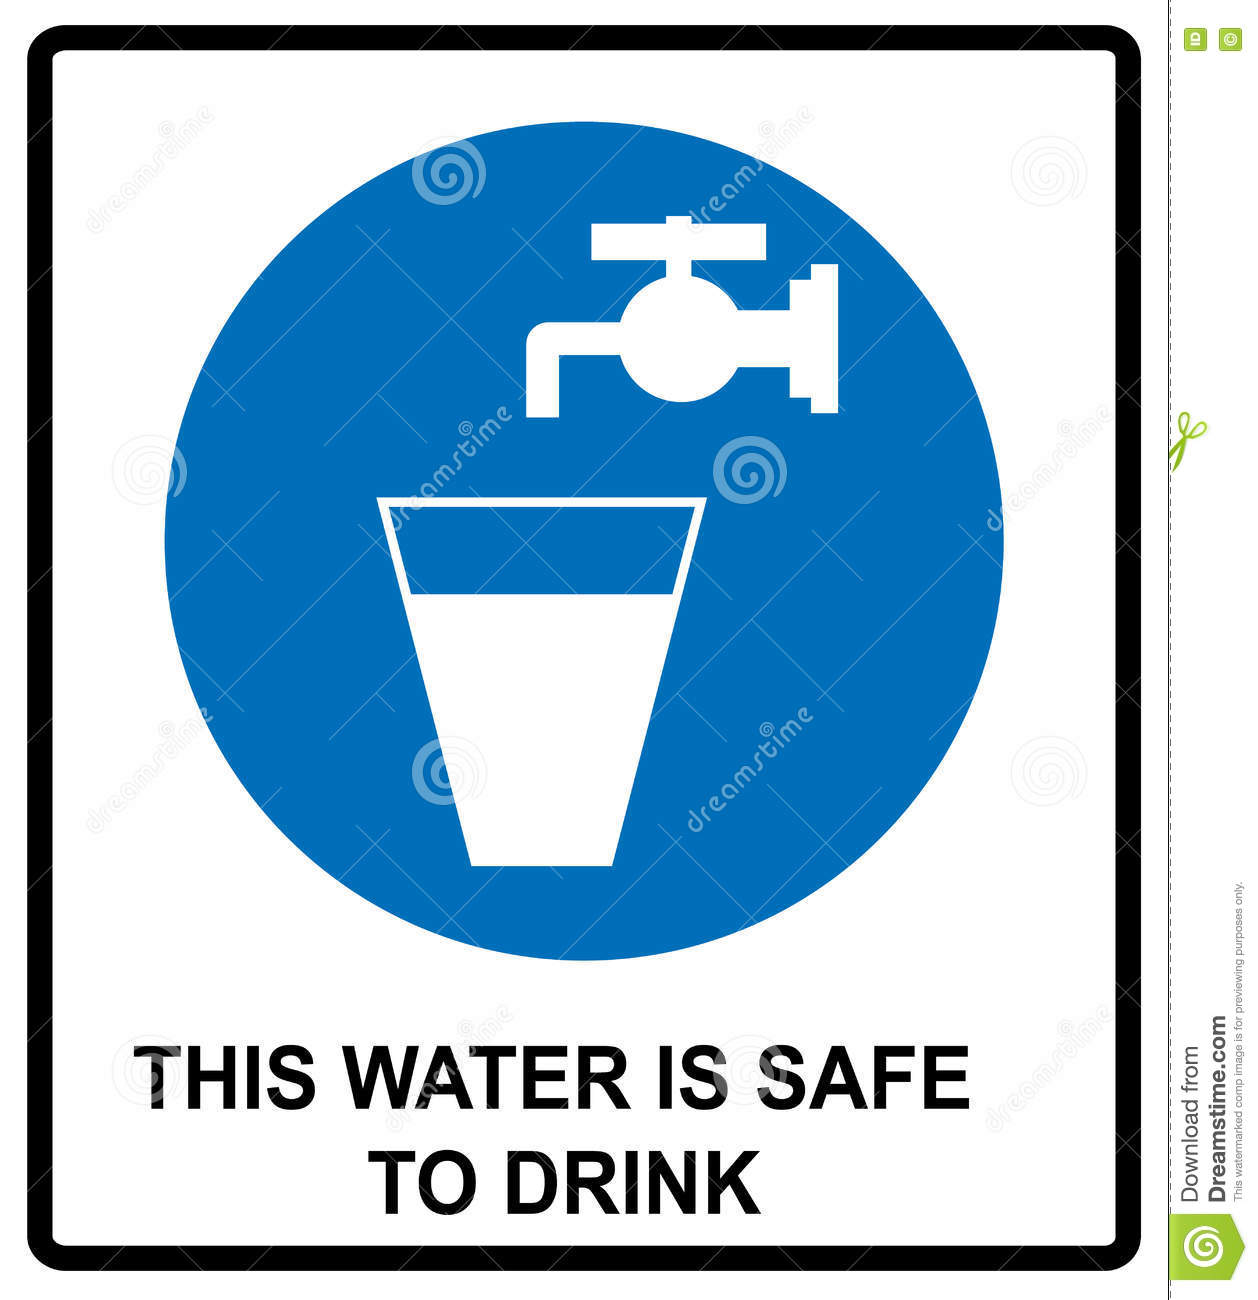 Condominiums, Drinking Water Systems and the Safe Drinking Water Act